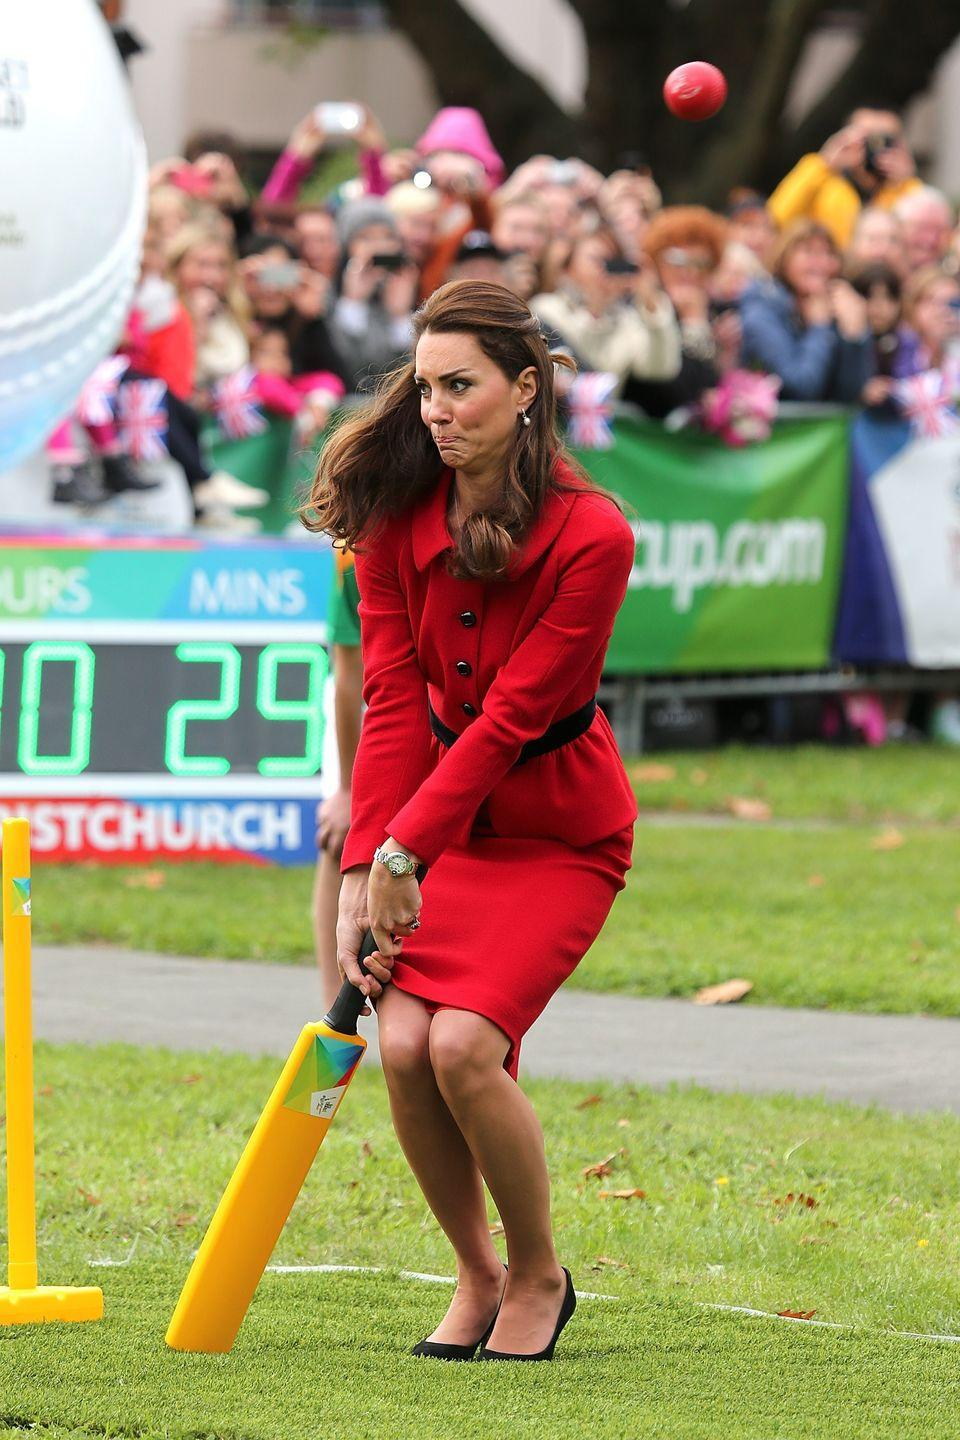 <p>Yet another example of Kate's competitive side came out while on a royal tour of New Zealand and Australia. For fun, she decided to take Will on in a game of cricket ... in a stunning red coat and dress, nonetheless. After all, she is a Duchess.</p>